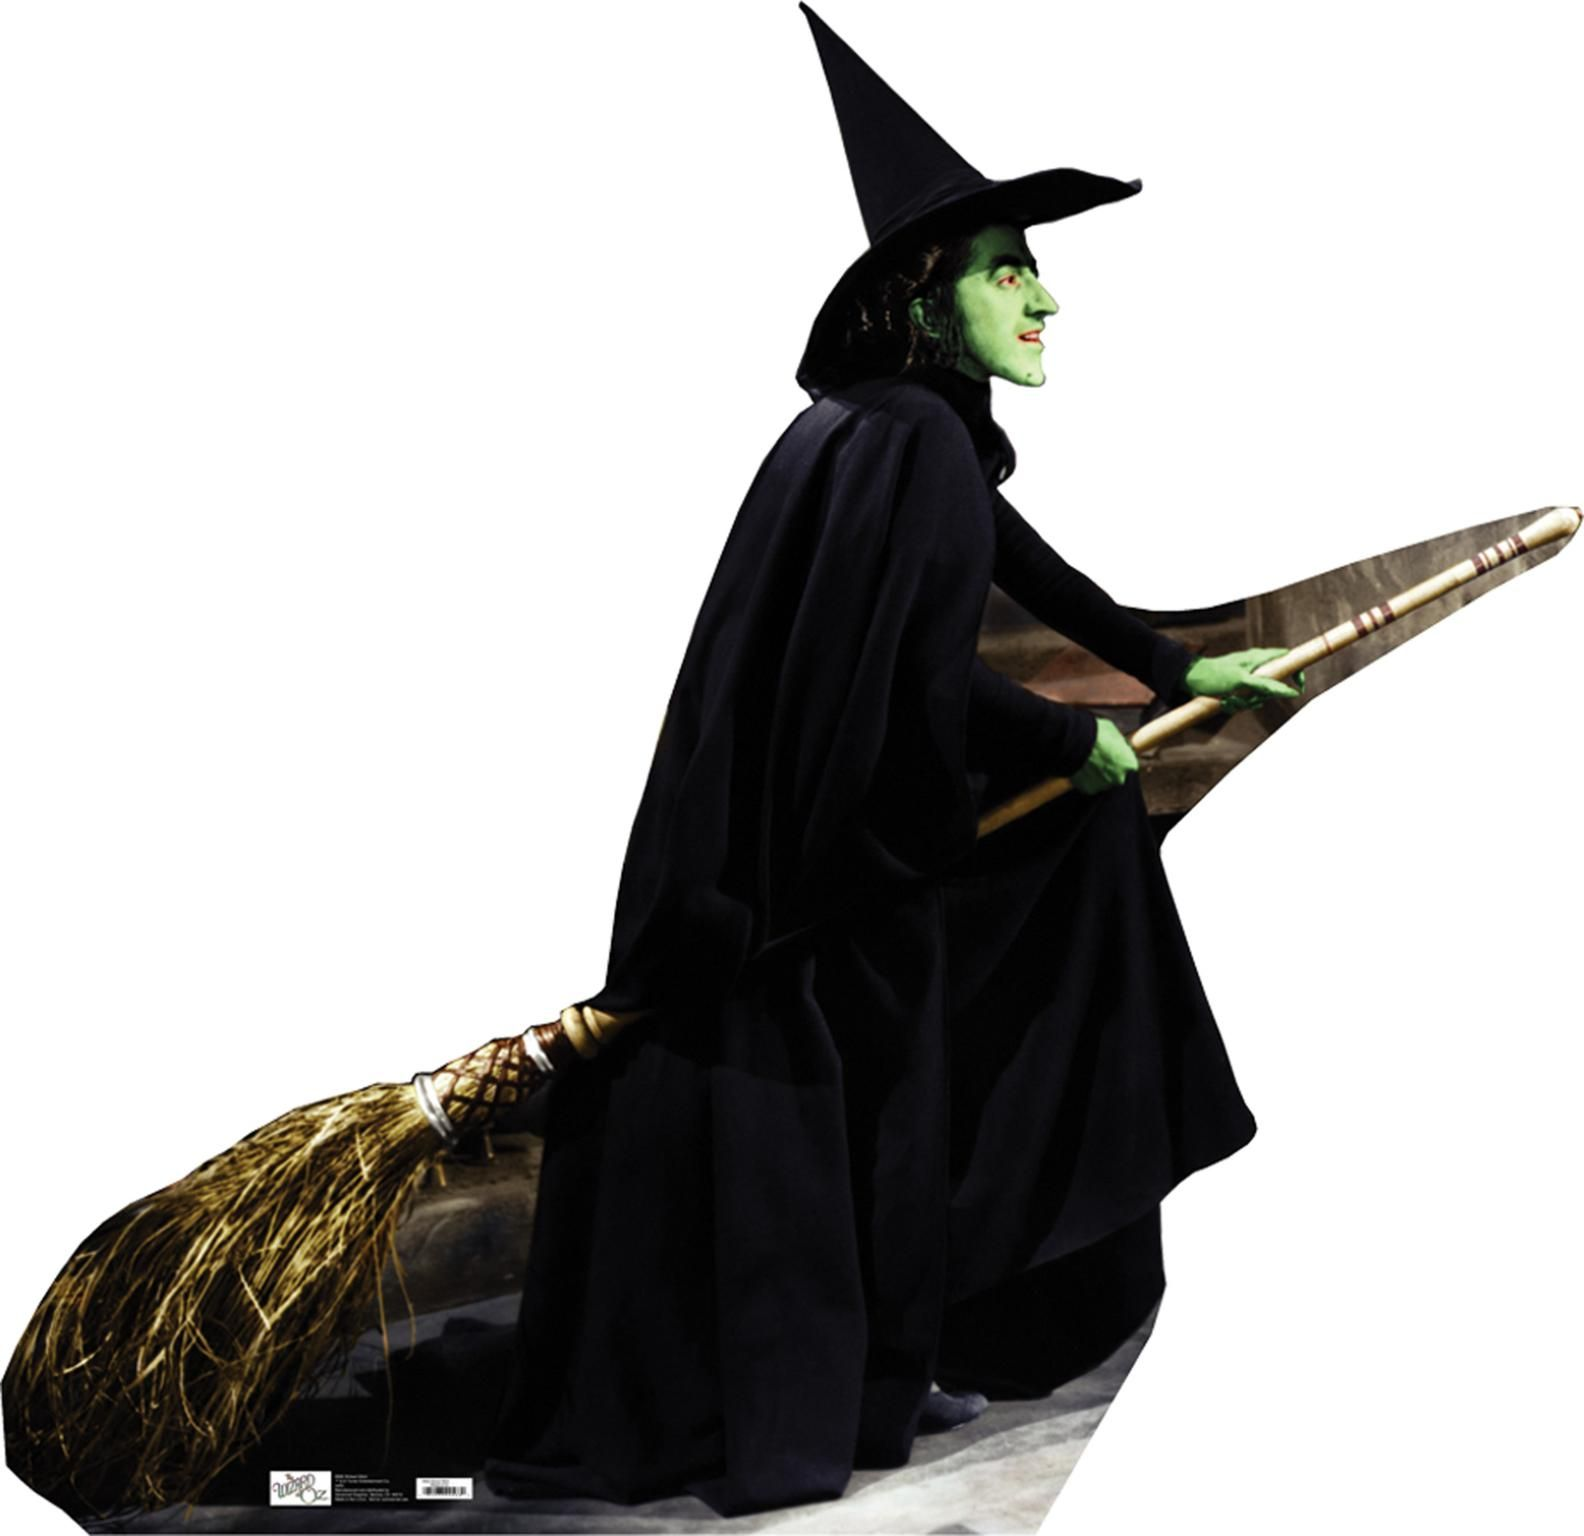 wizard of oz witch | The Wicked Witch - From Wizard of Oz - 568 ...